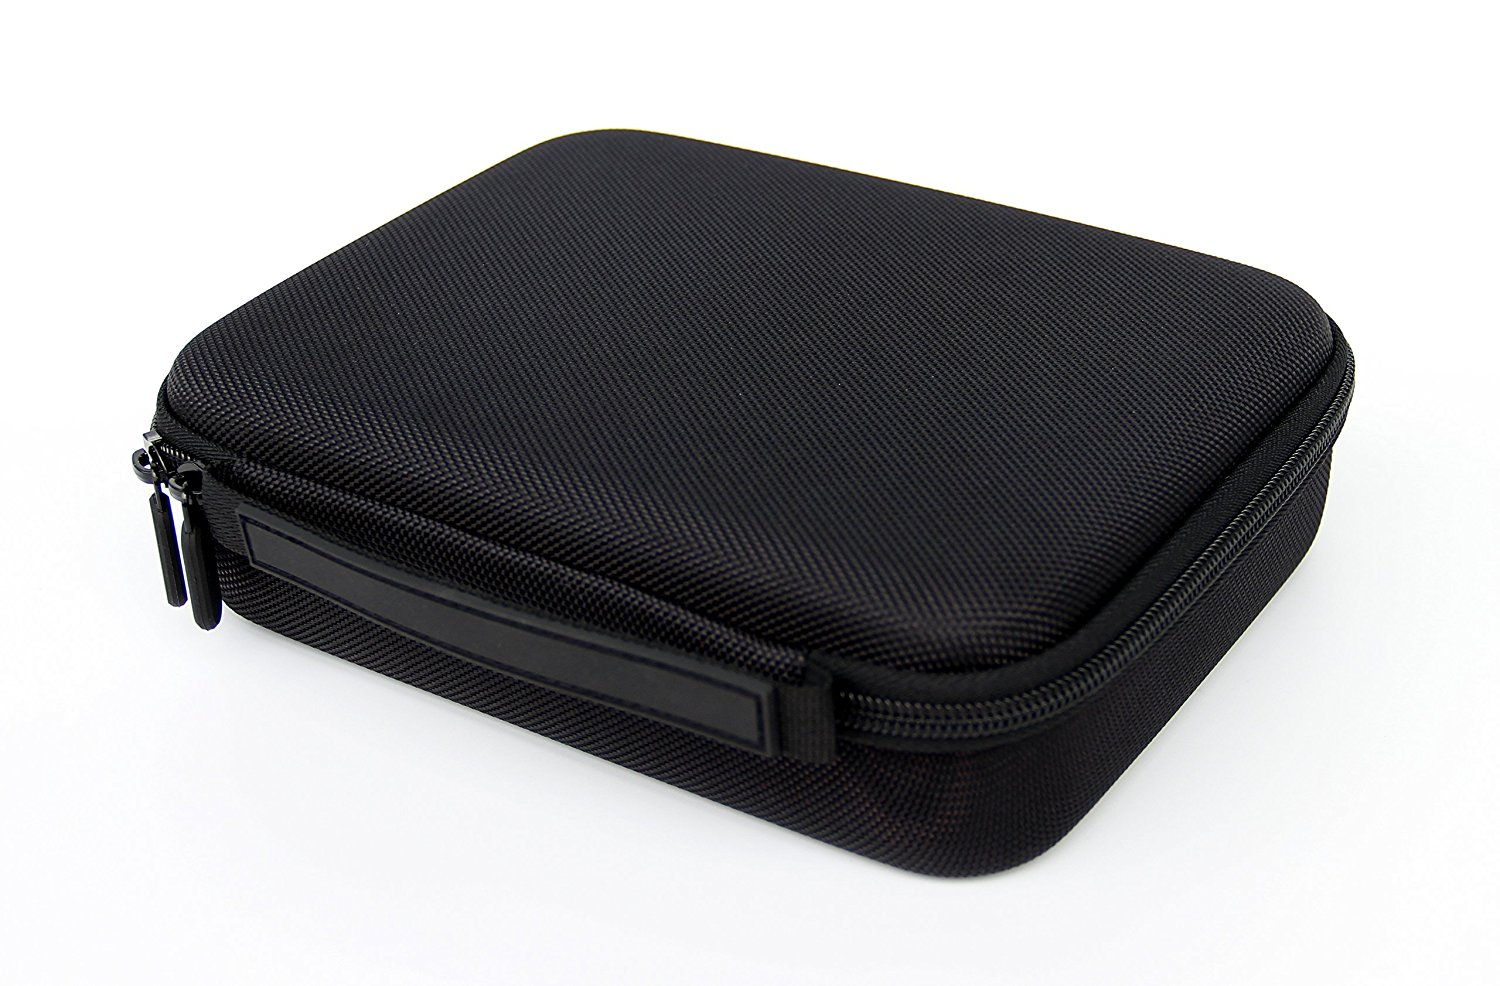 Portable Pocket Pistol Case with rubber handel,compact size and Foam Interior – Shockproof and water resistent – Fits most Glock, Smith and Wesson (S&W), Ruger, Colt,etc. Featured Image